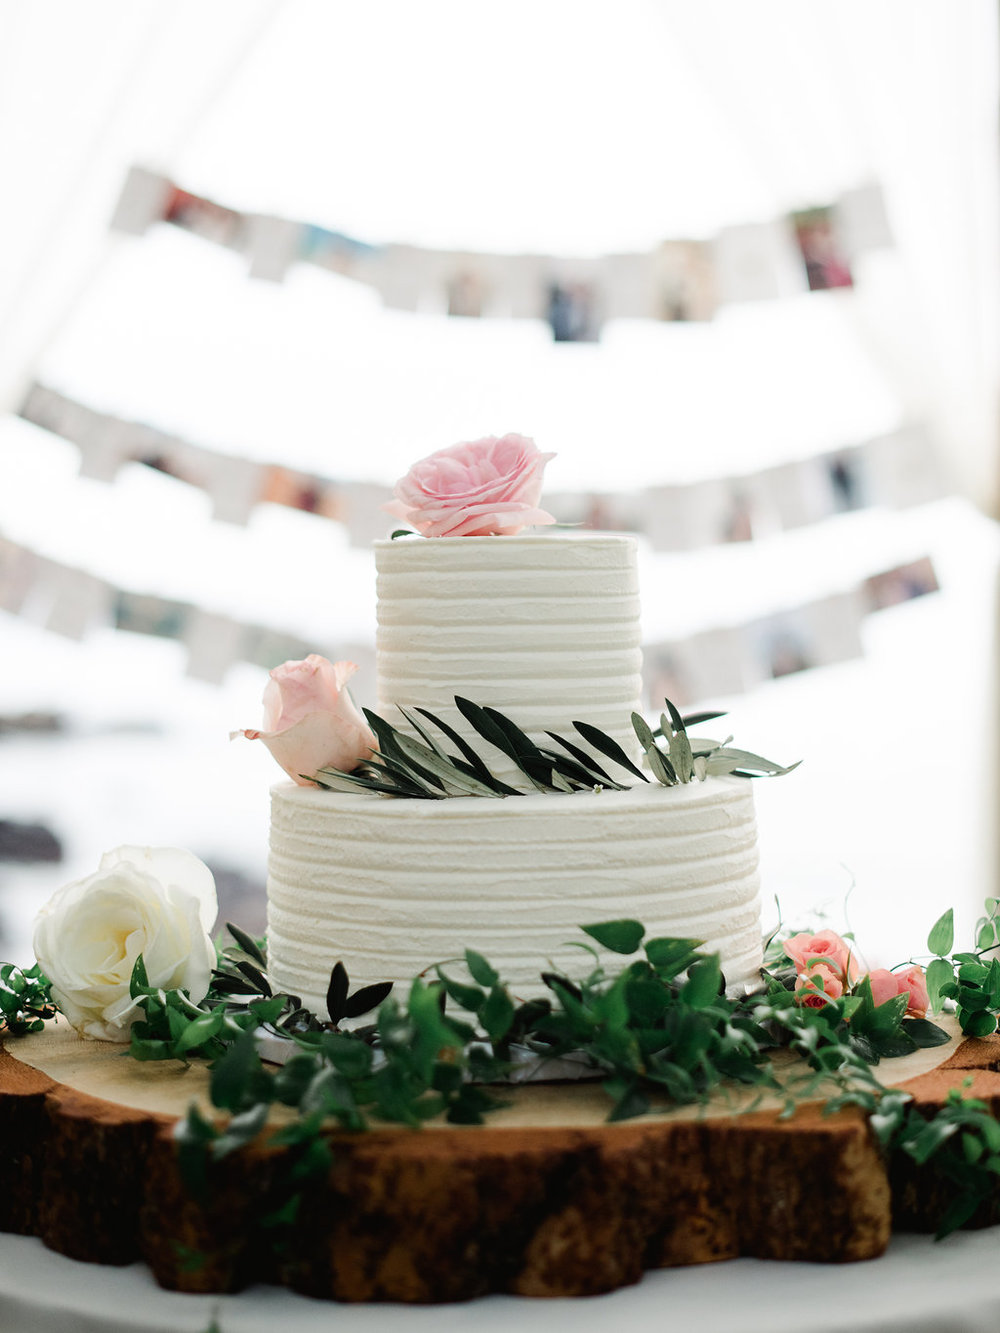 Bliss Wedding Design & Spectacular Events - wedding cake